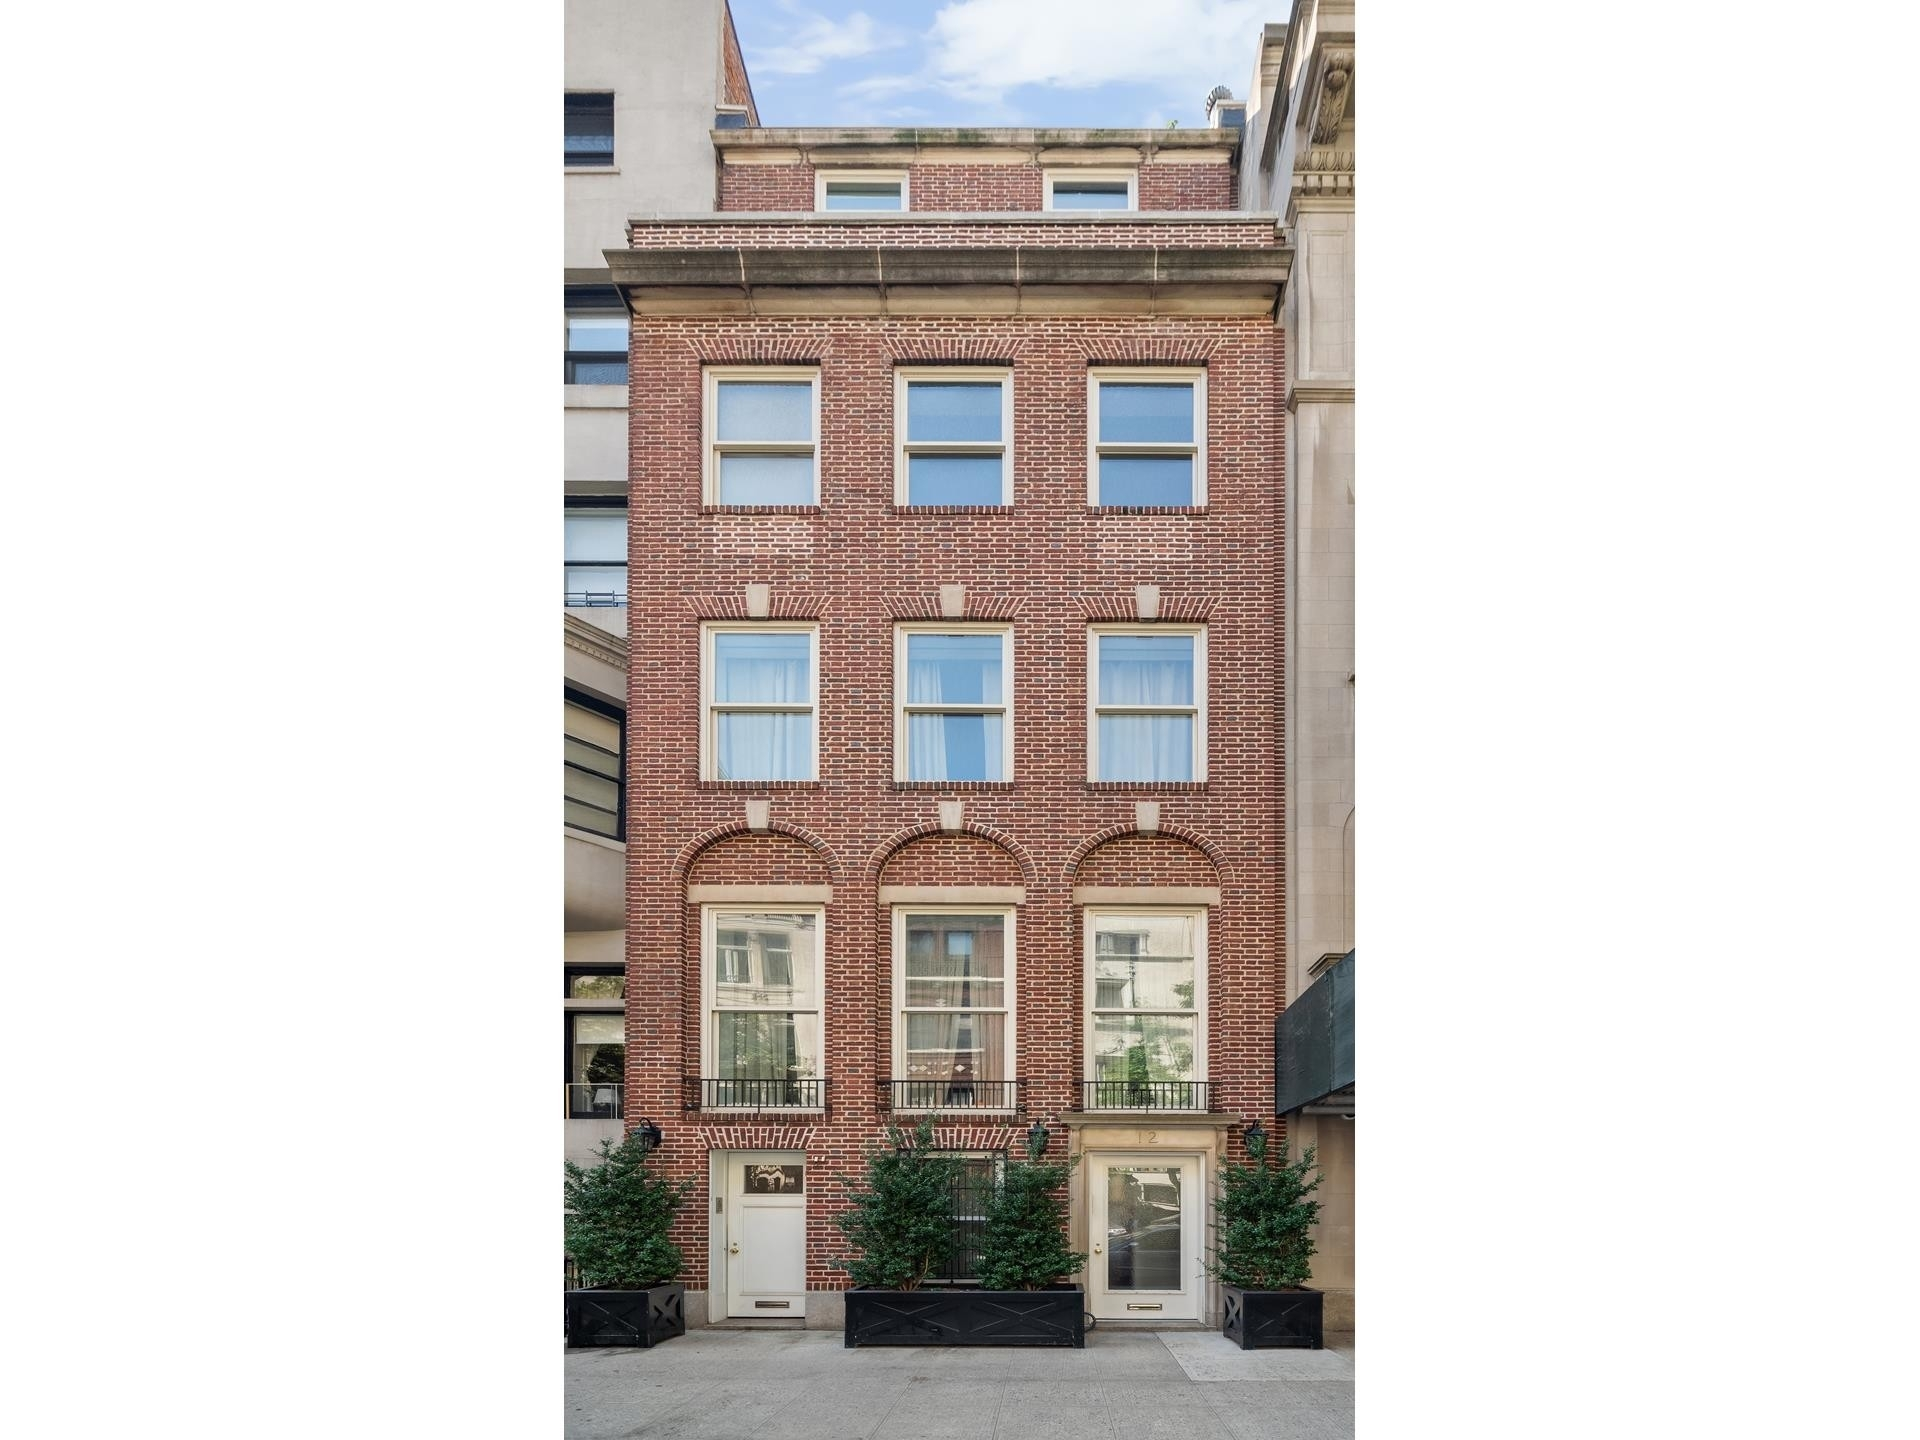 Property à 12 E 80TH ST , TOWNHOUSE Upper East Side, New York, NY 10075